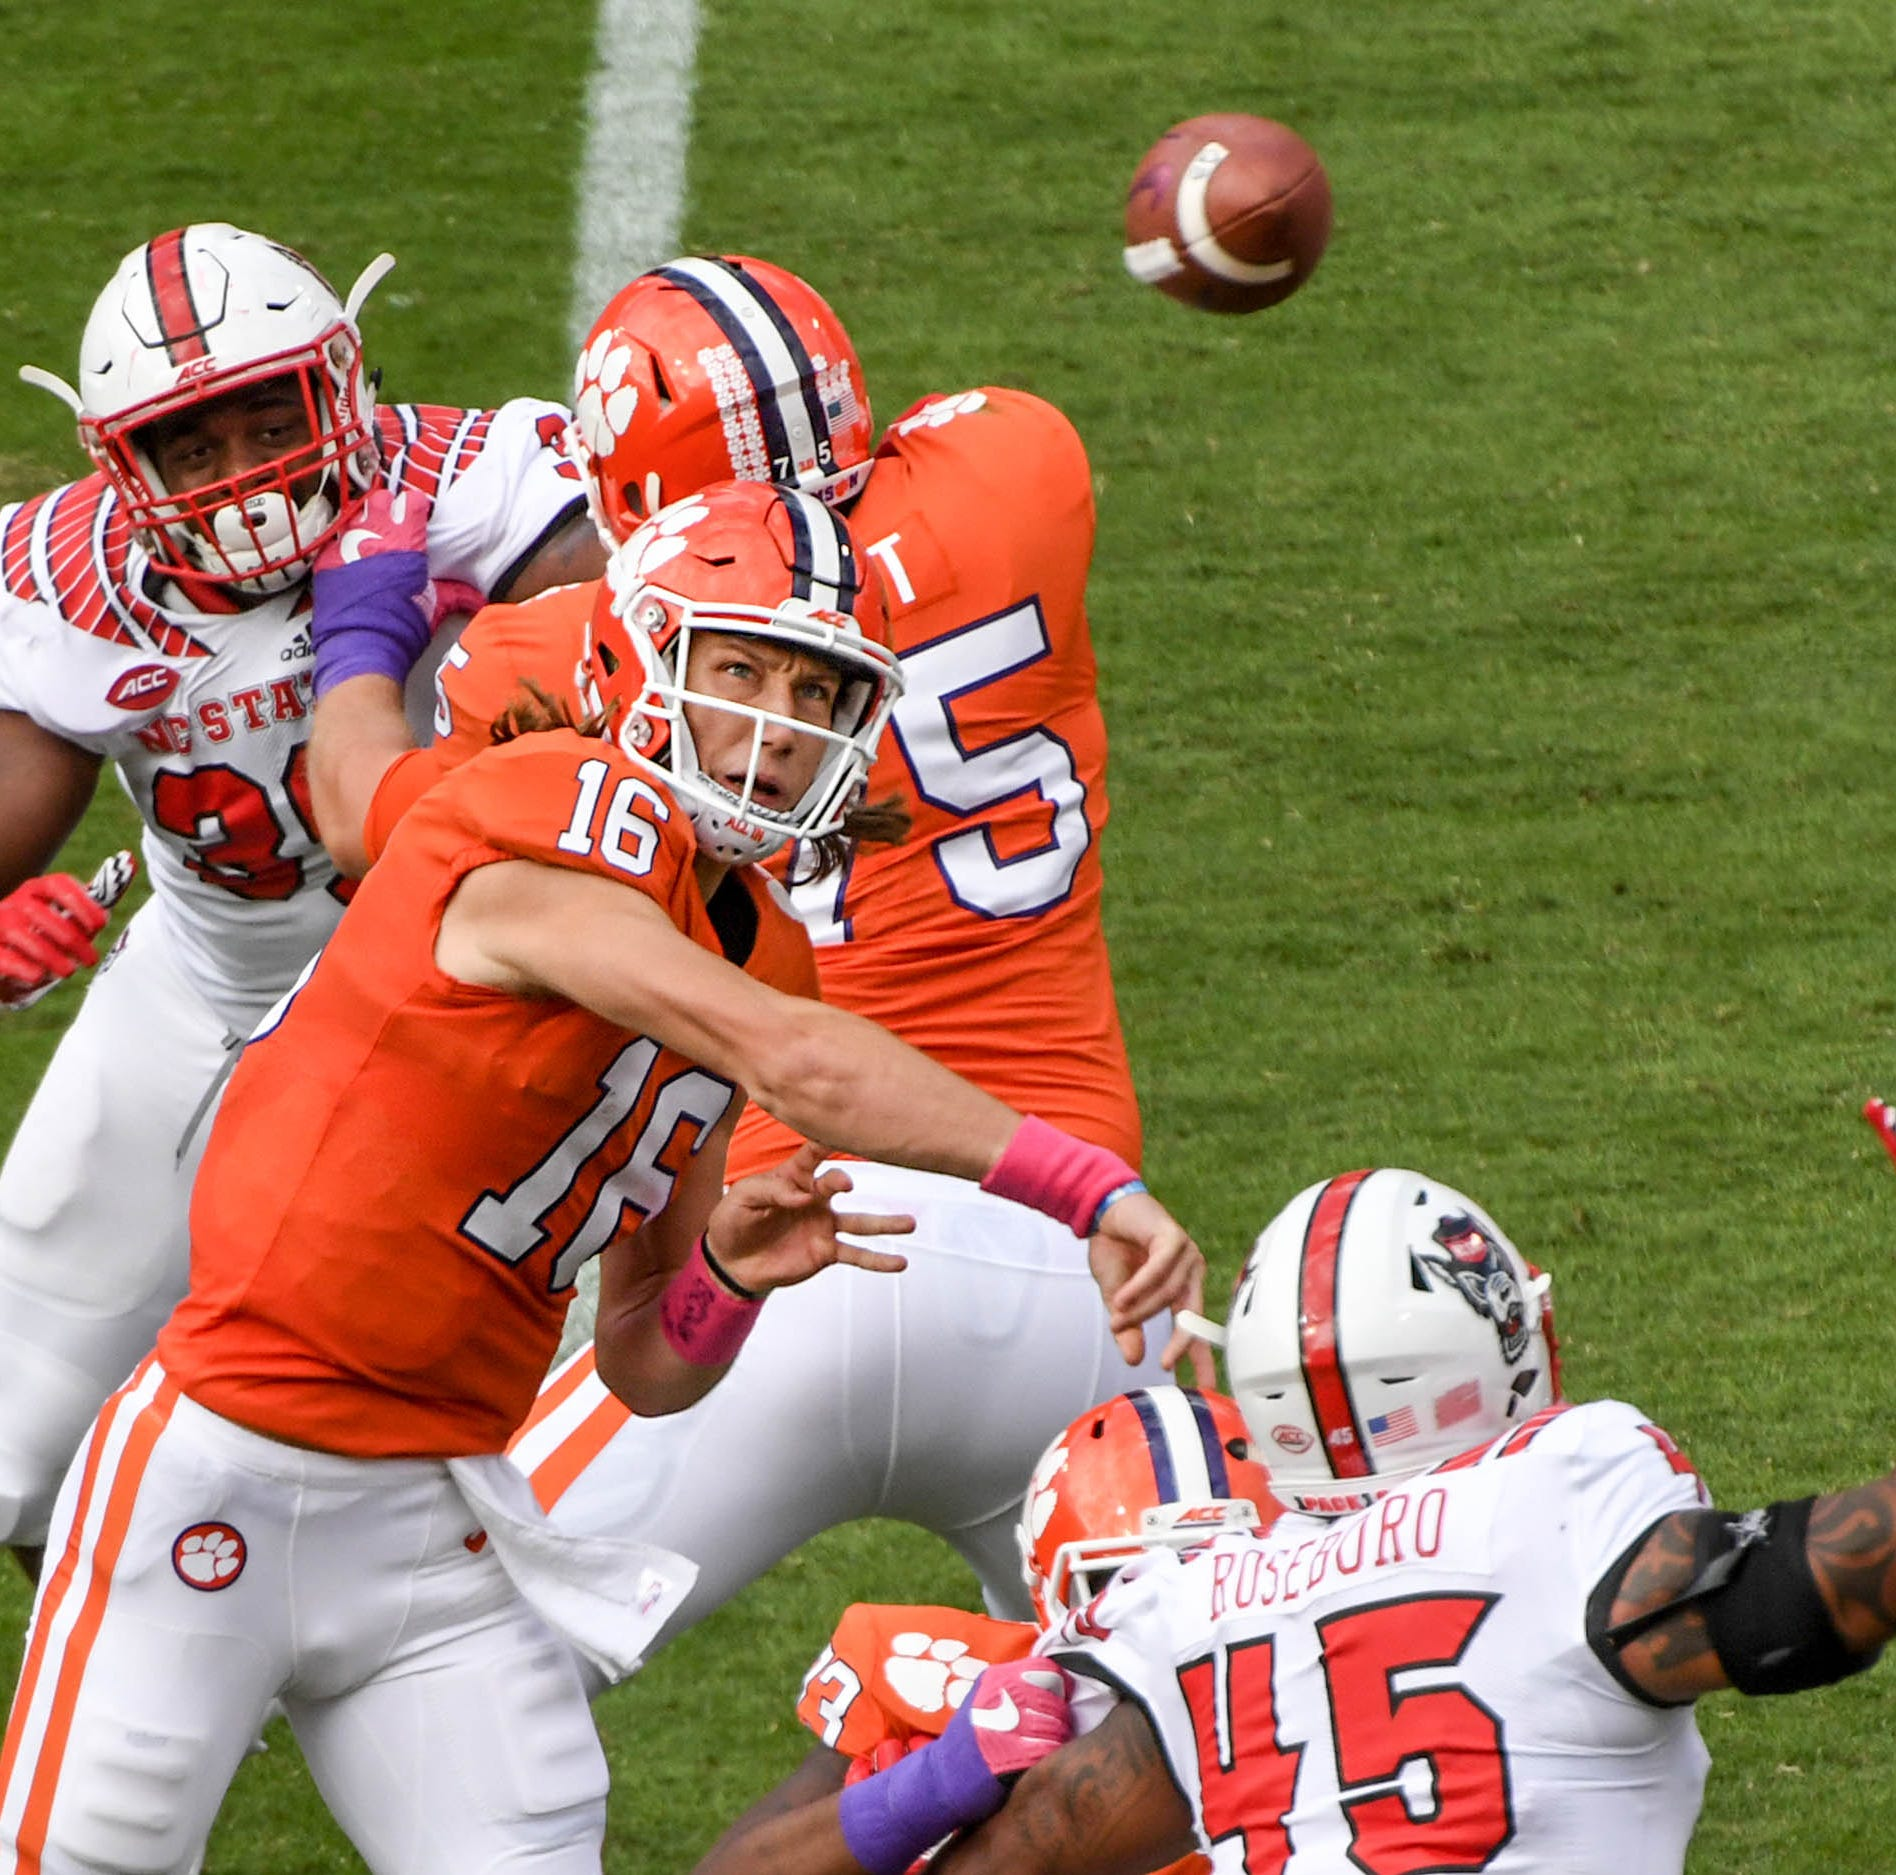 Clemson vs NC State live updates: Tigers defeat Wolfpack, improve to 7-0 on season